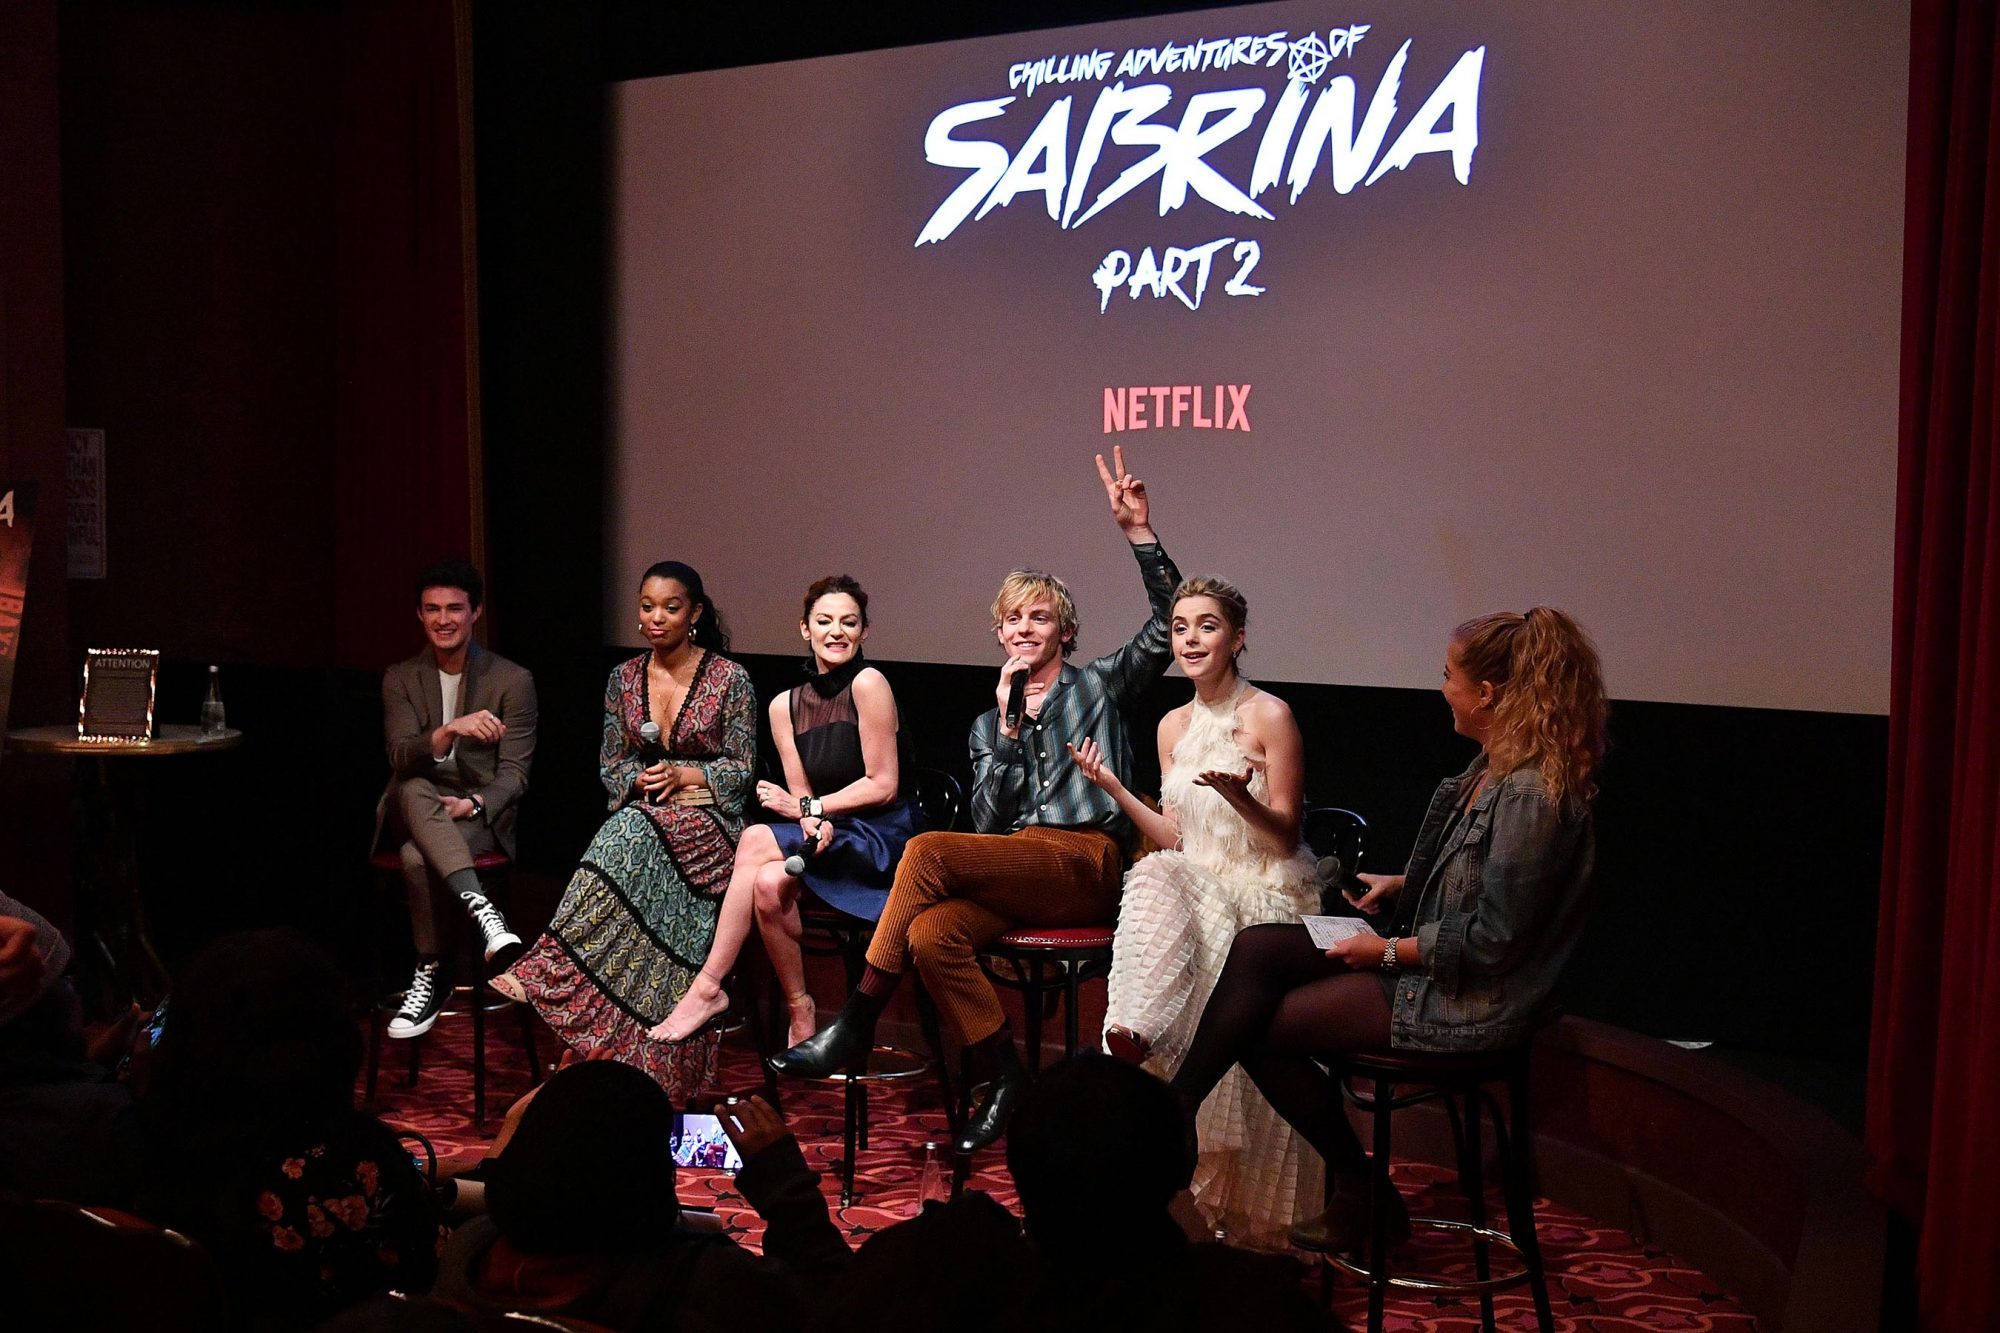 """Entertainment Weekly And Netflix Host A Screening Of The """"Chilling Adventures Of Sabrina: Part 2"""" In New York"""